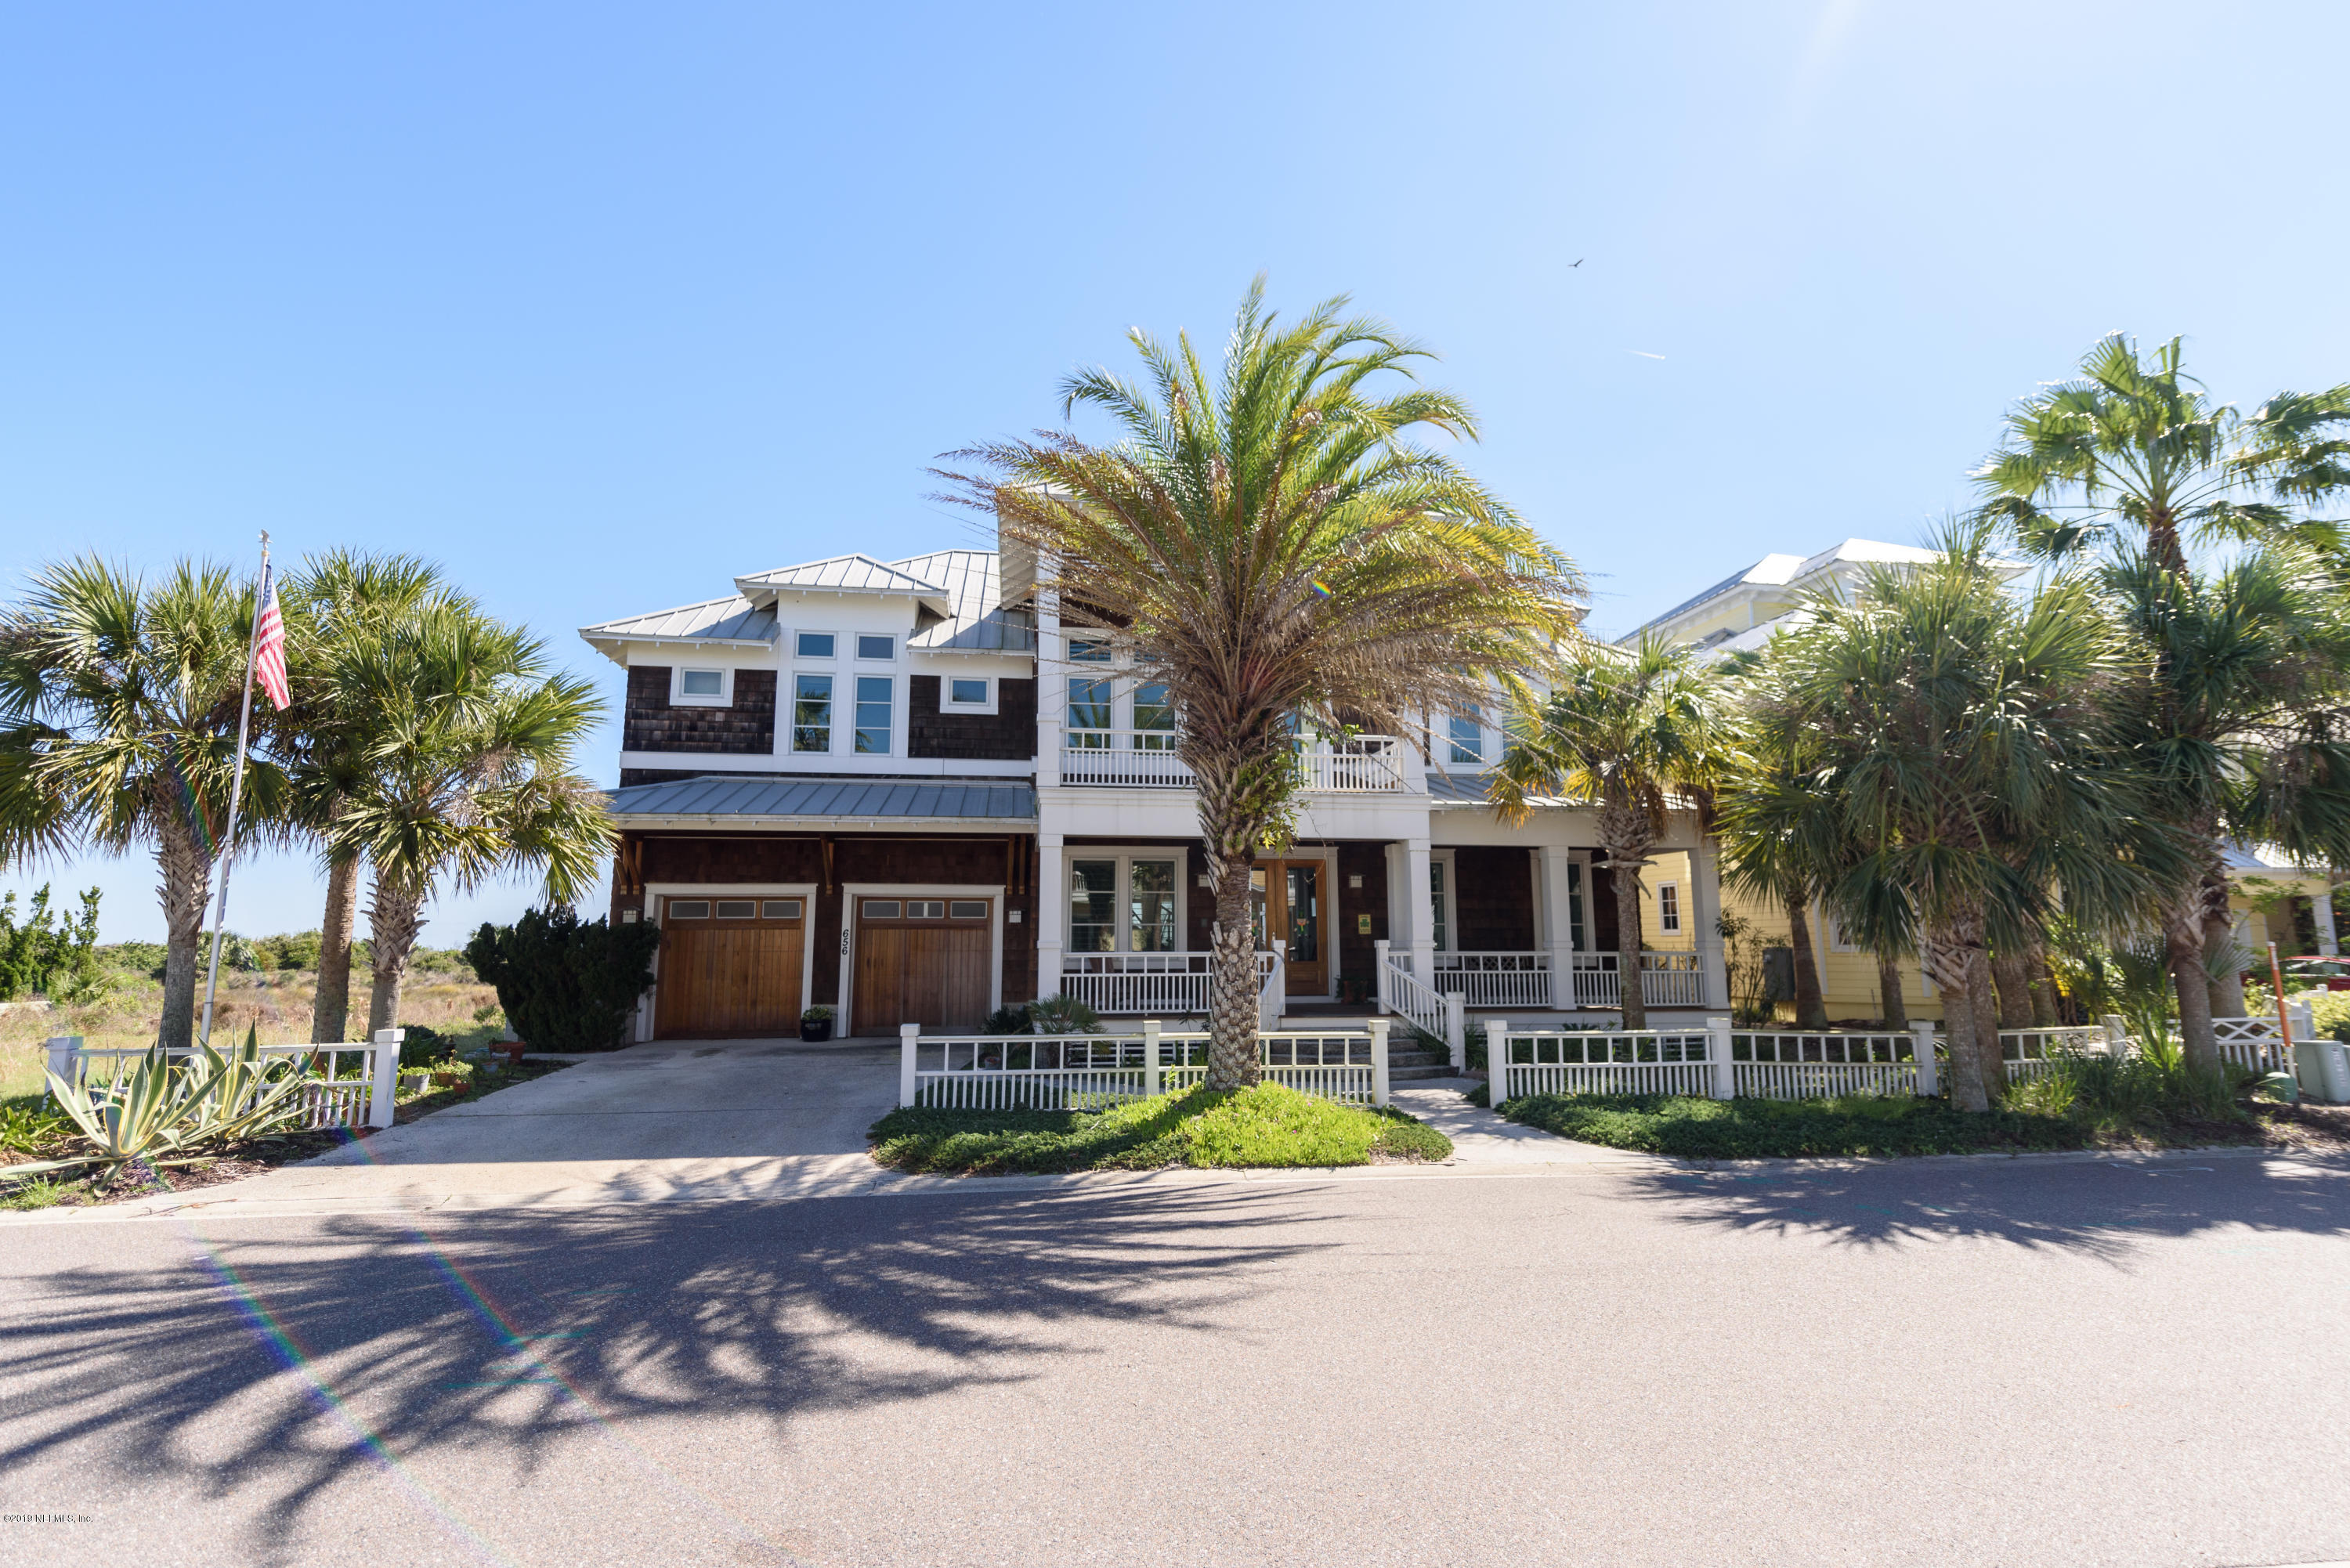 656 OCEAN PALM, ST AUGUSTINE, FLORIDA 32080, 5 Bedrooms Bedrooms, ,4 BathroomsBathrooms,Residential - single family,For sale,OCEAN PALM,983408